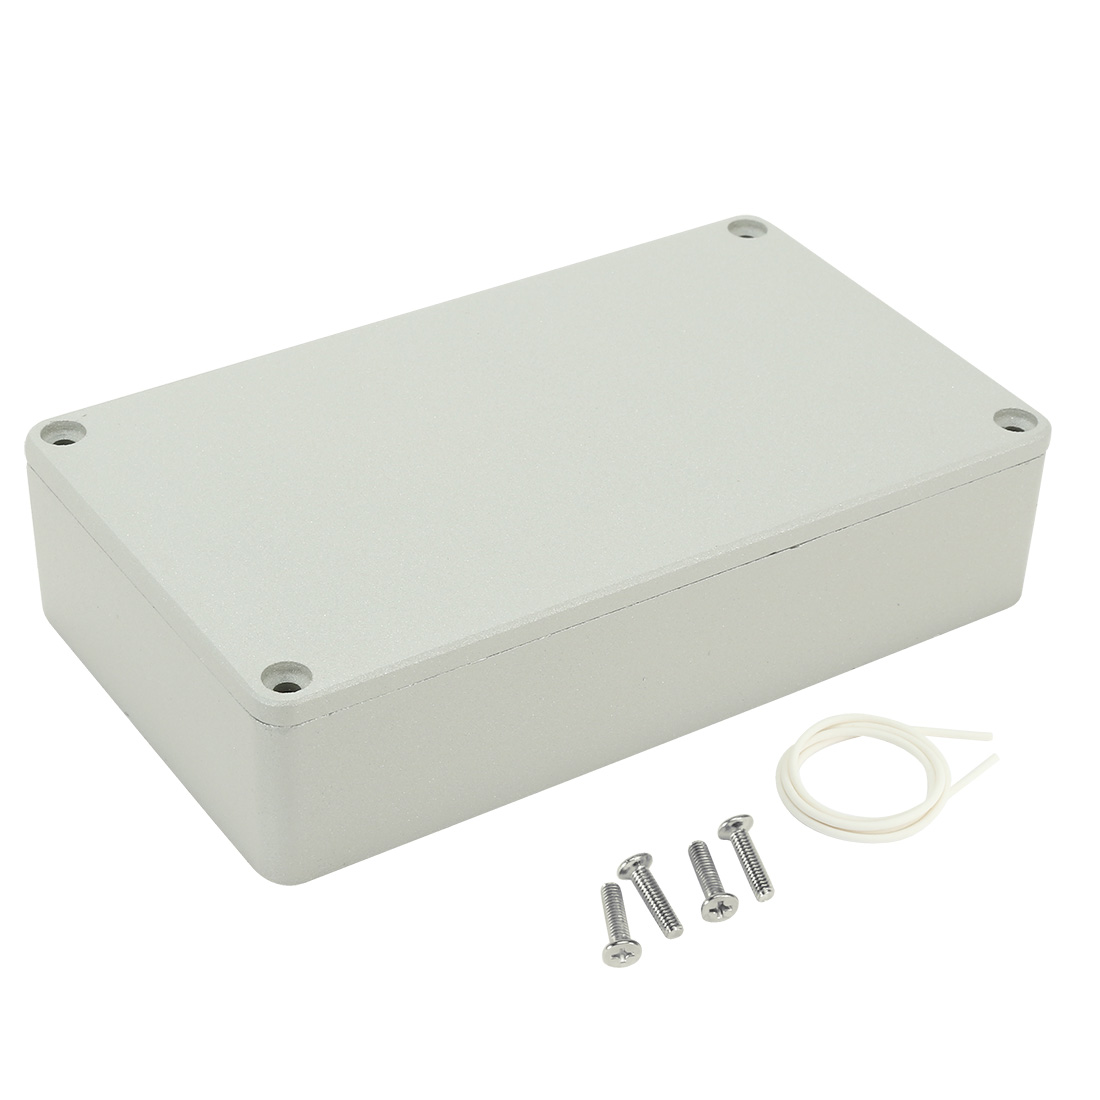 "6.5""x3.7""x1.5""(165mmx95mmx39mm) Aluminum Junction Box Universal Electric Project Enclosure"